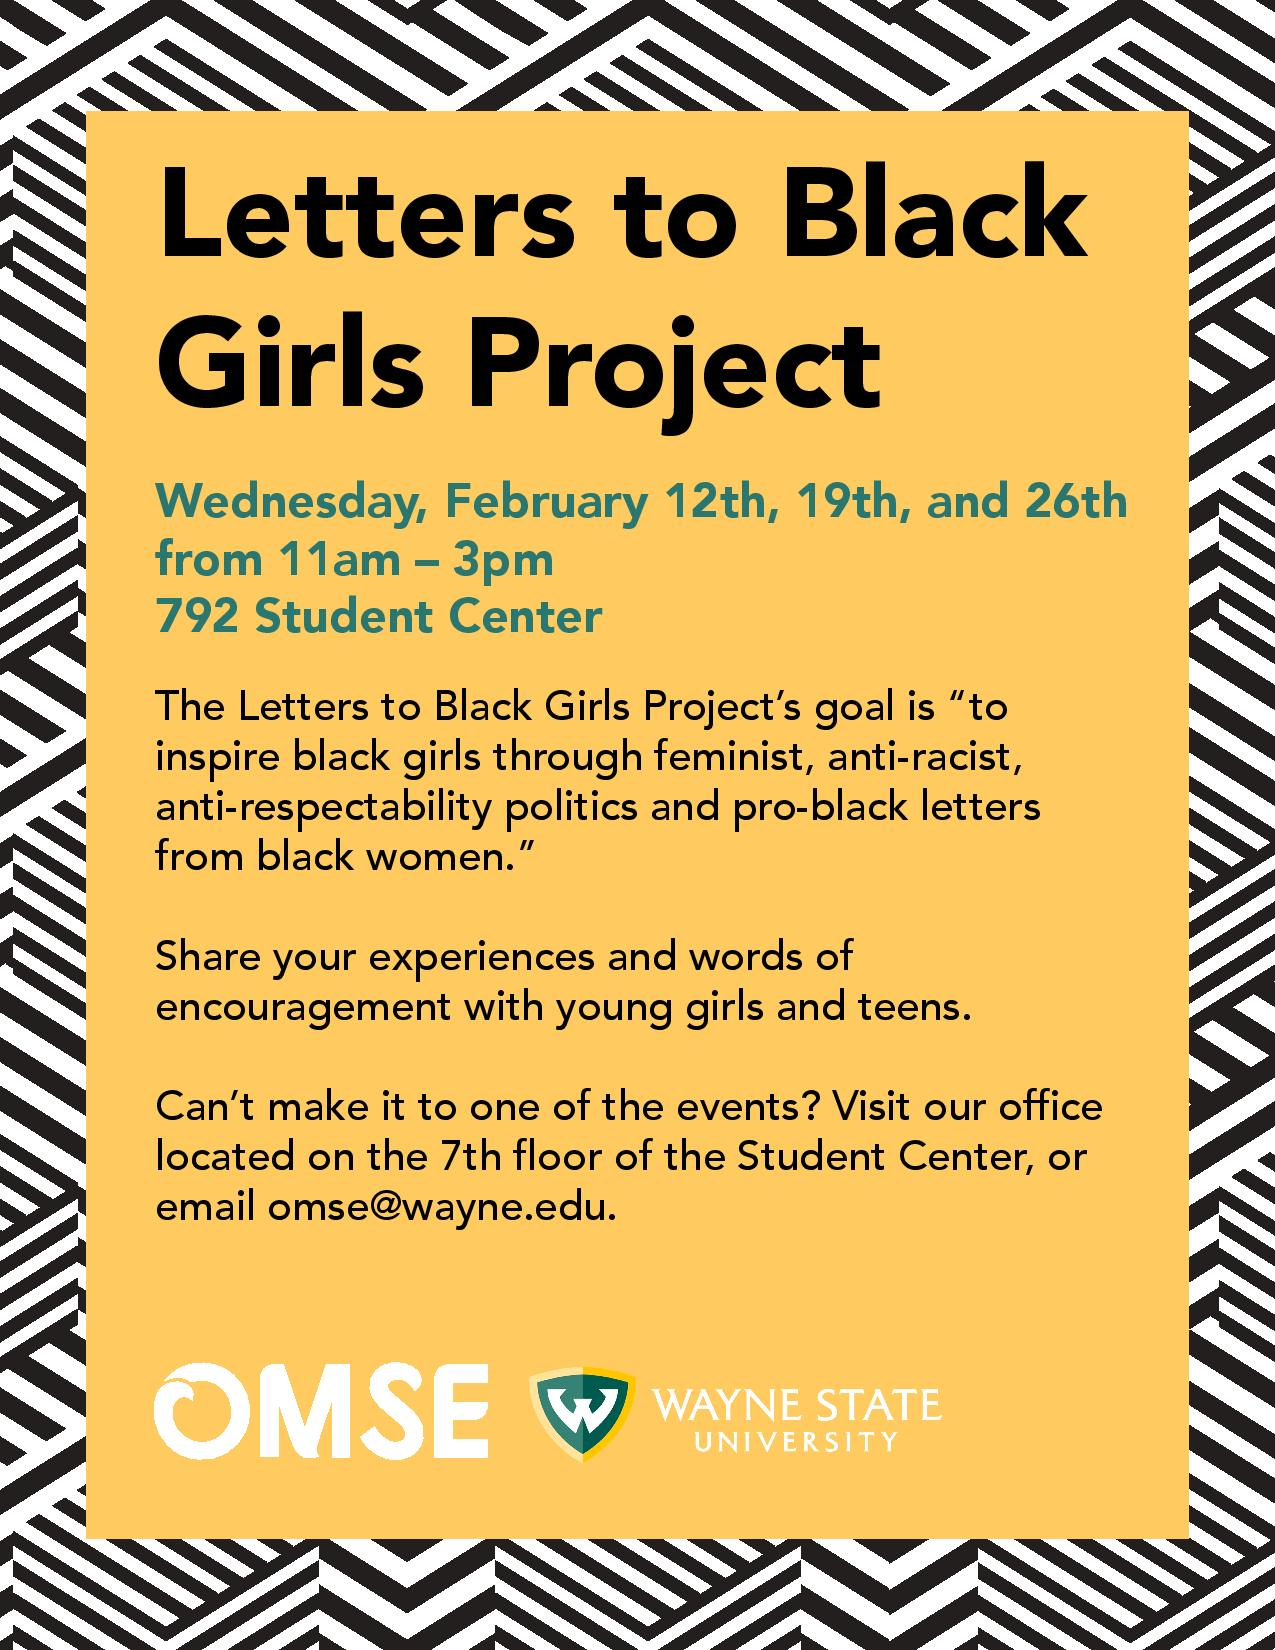 Letters to Black Girls